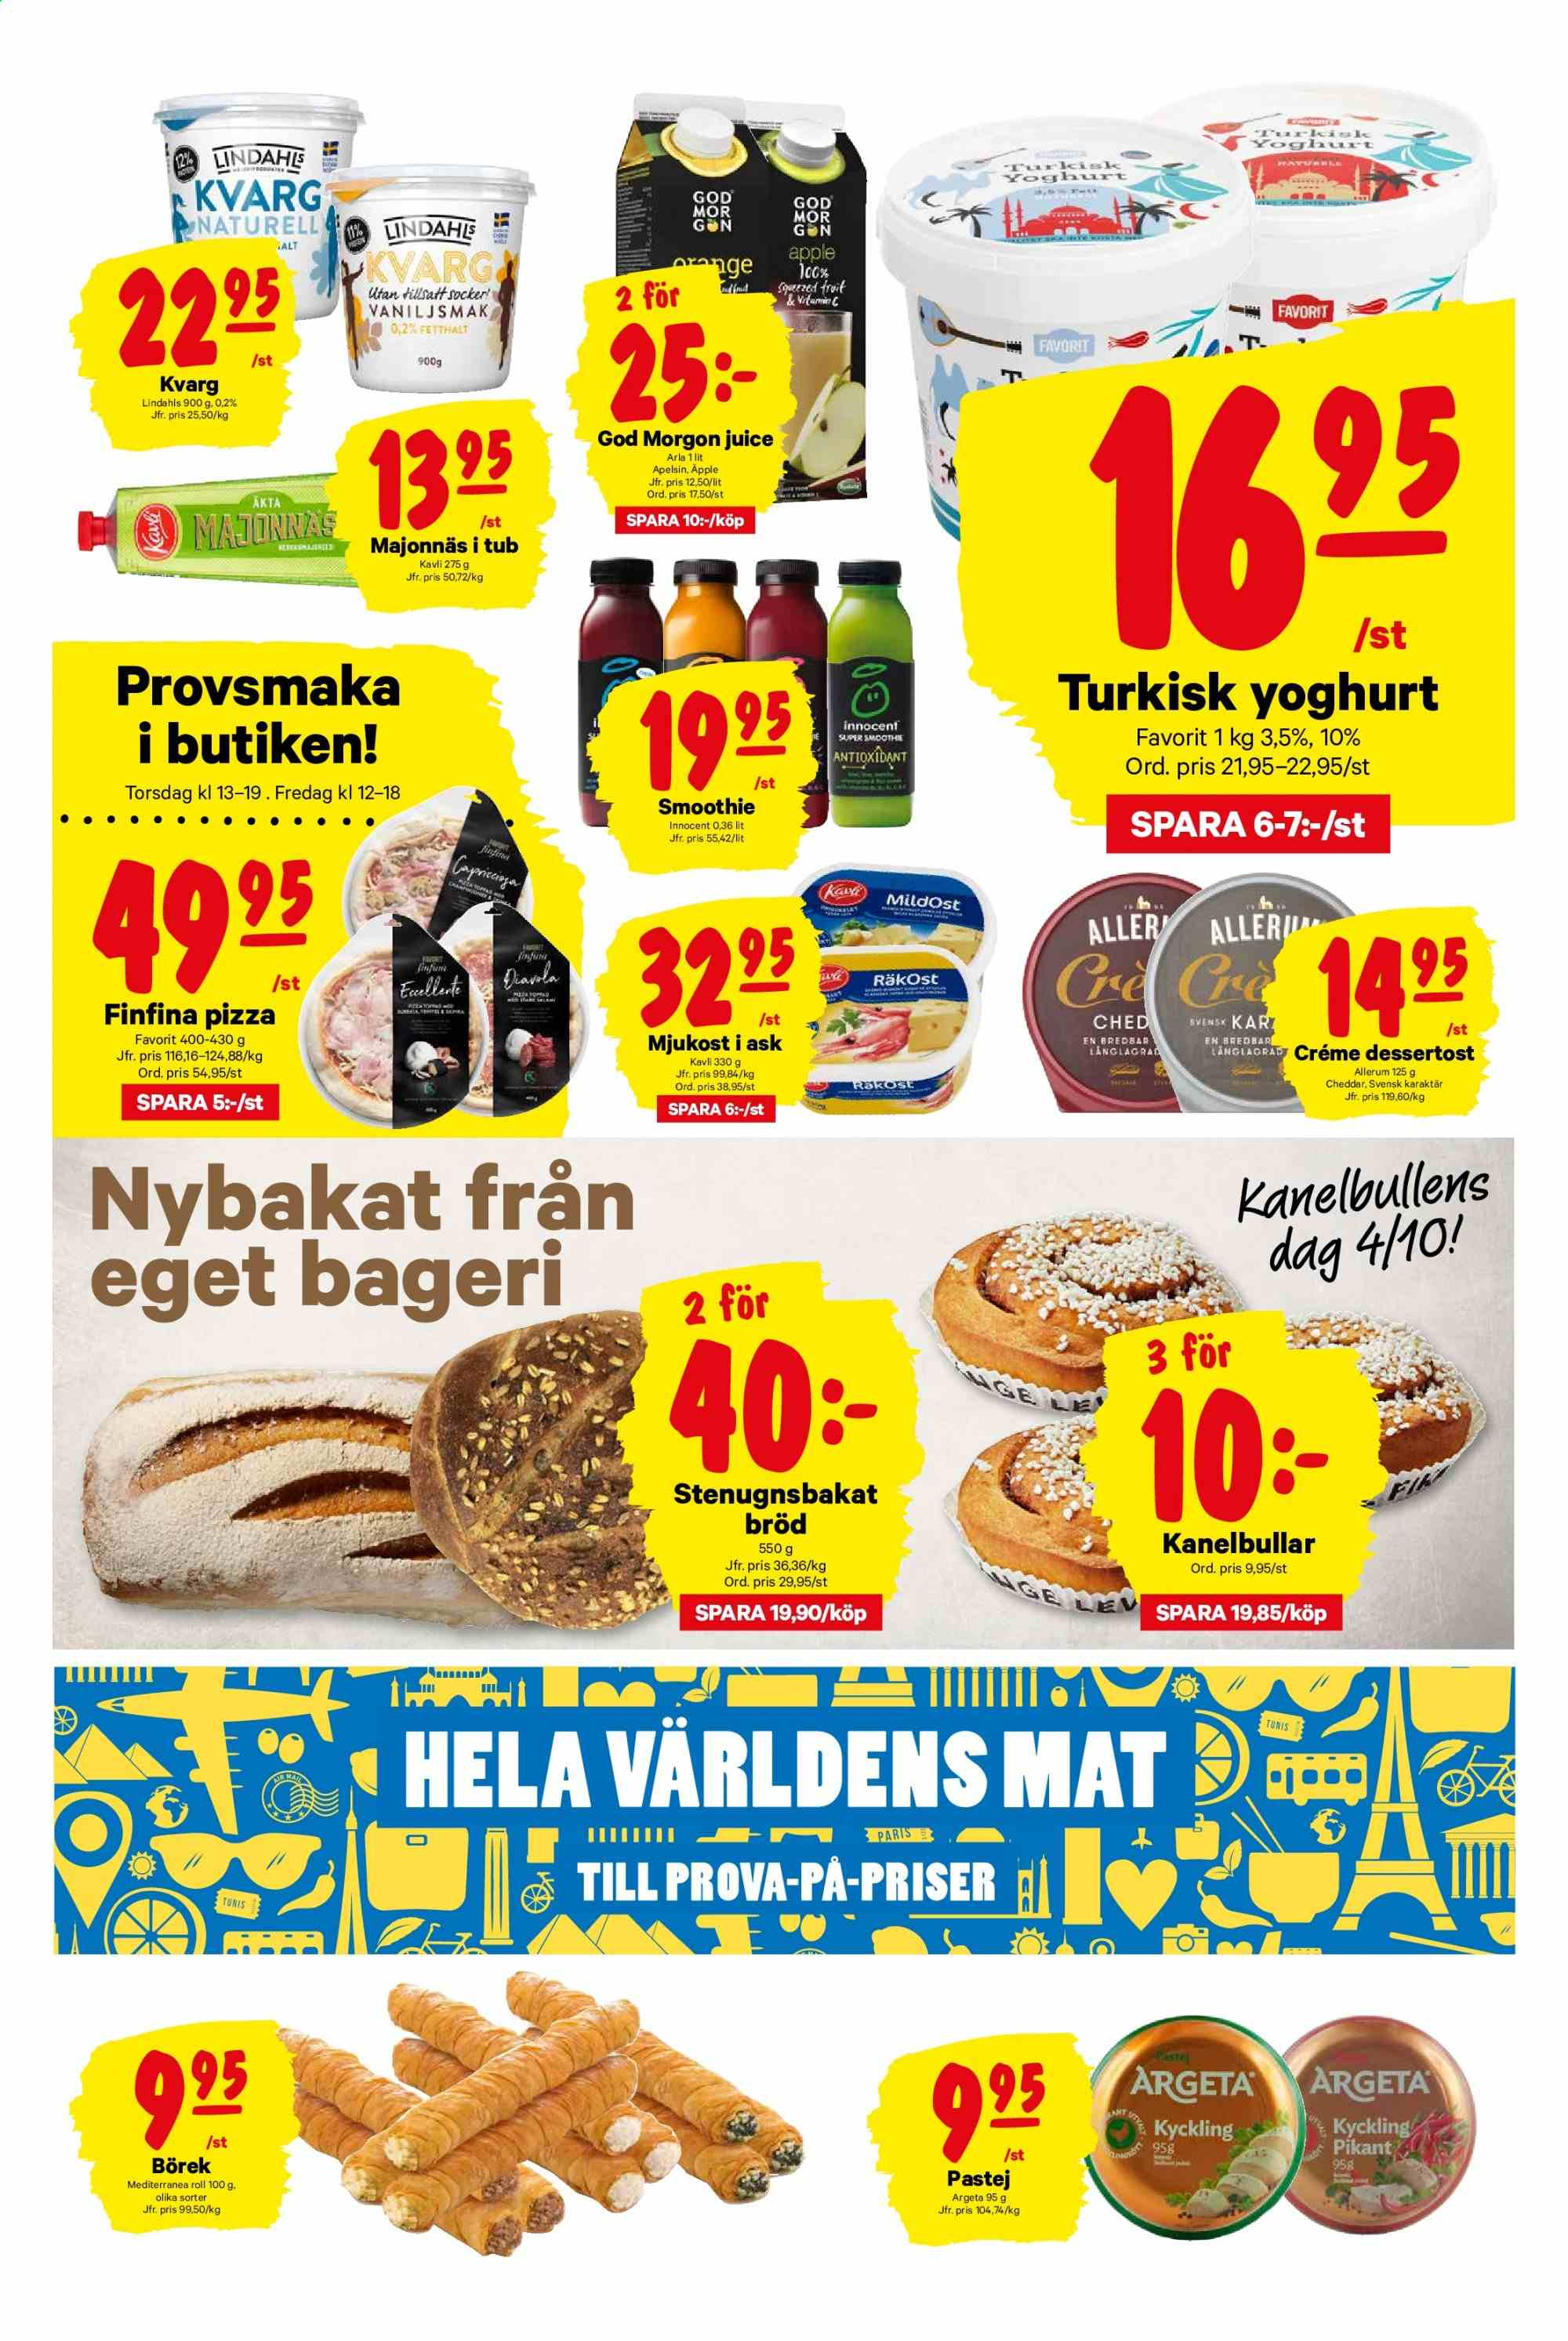 City Gross reklamblad - 30/9 2019 - 6/10 2019. Sida 5.